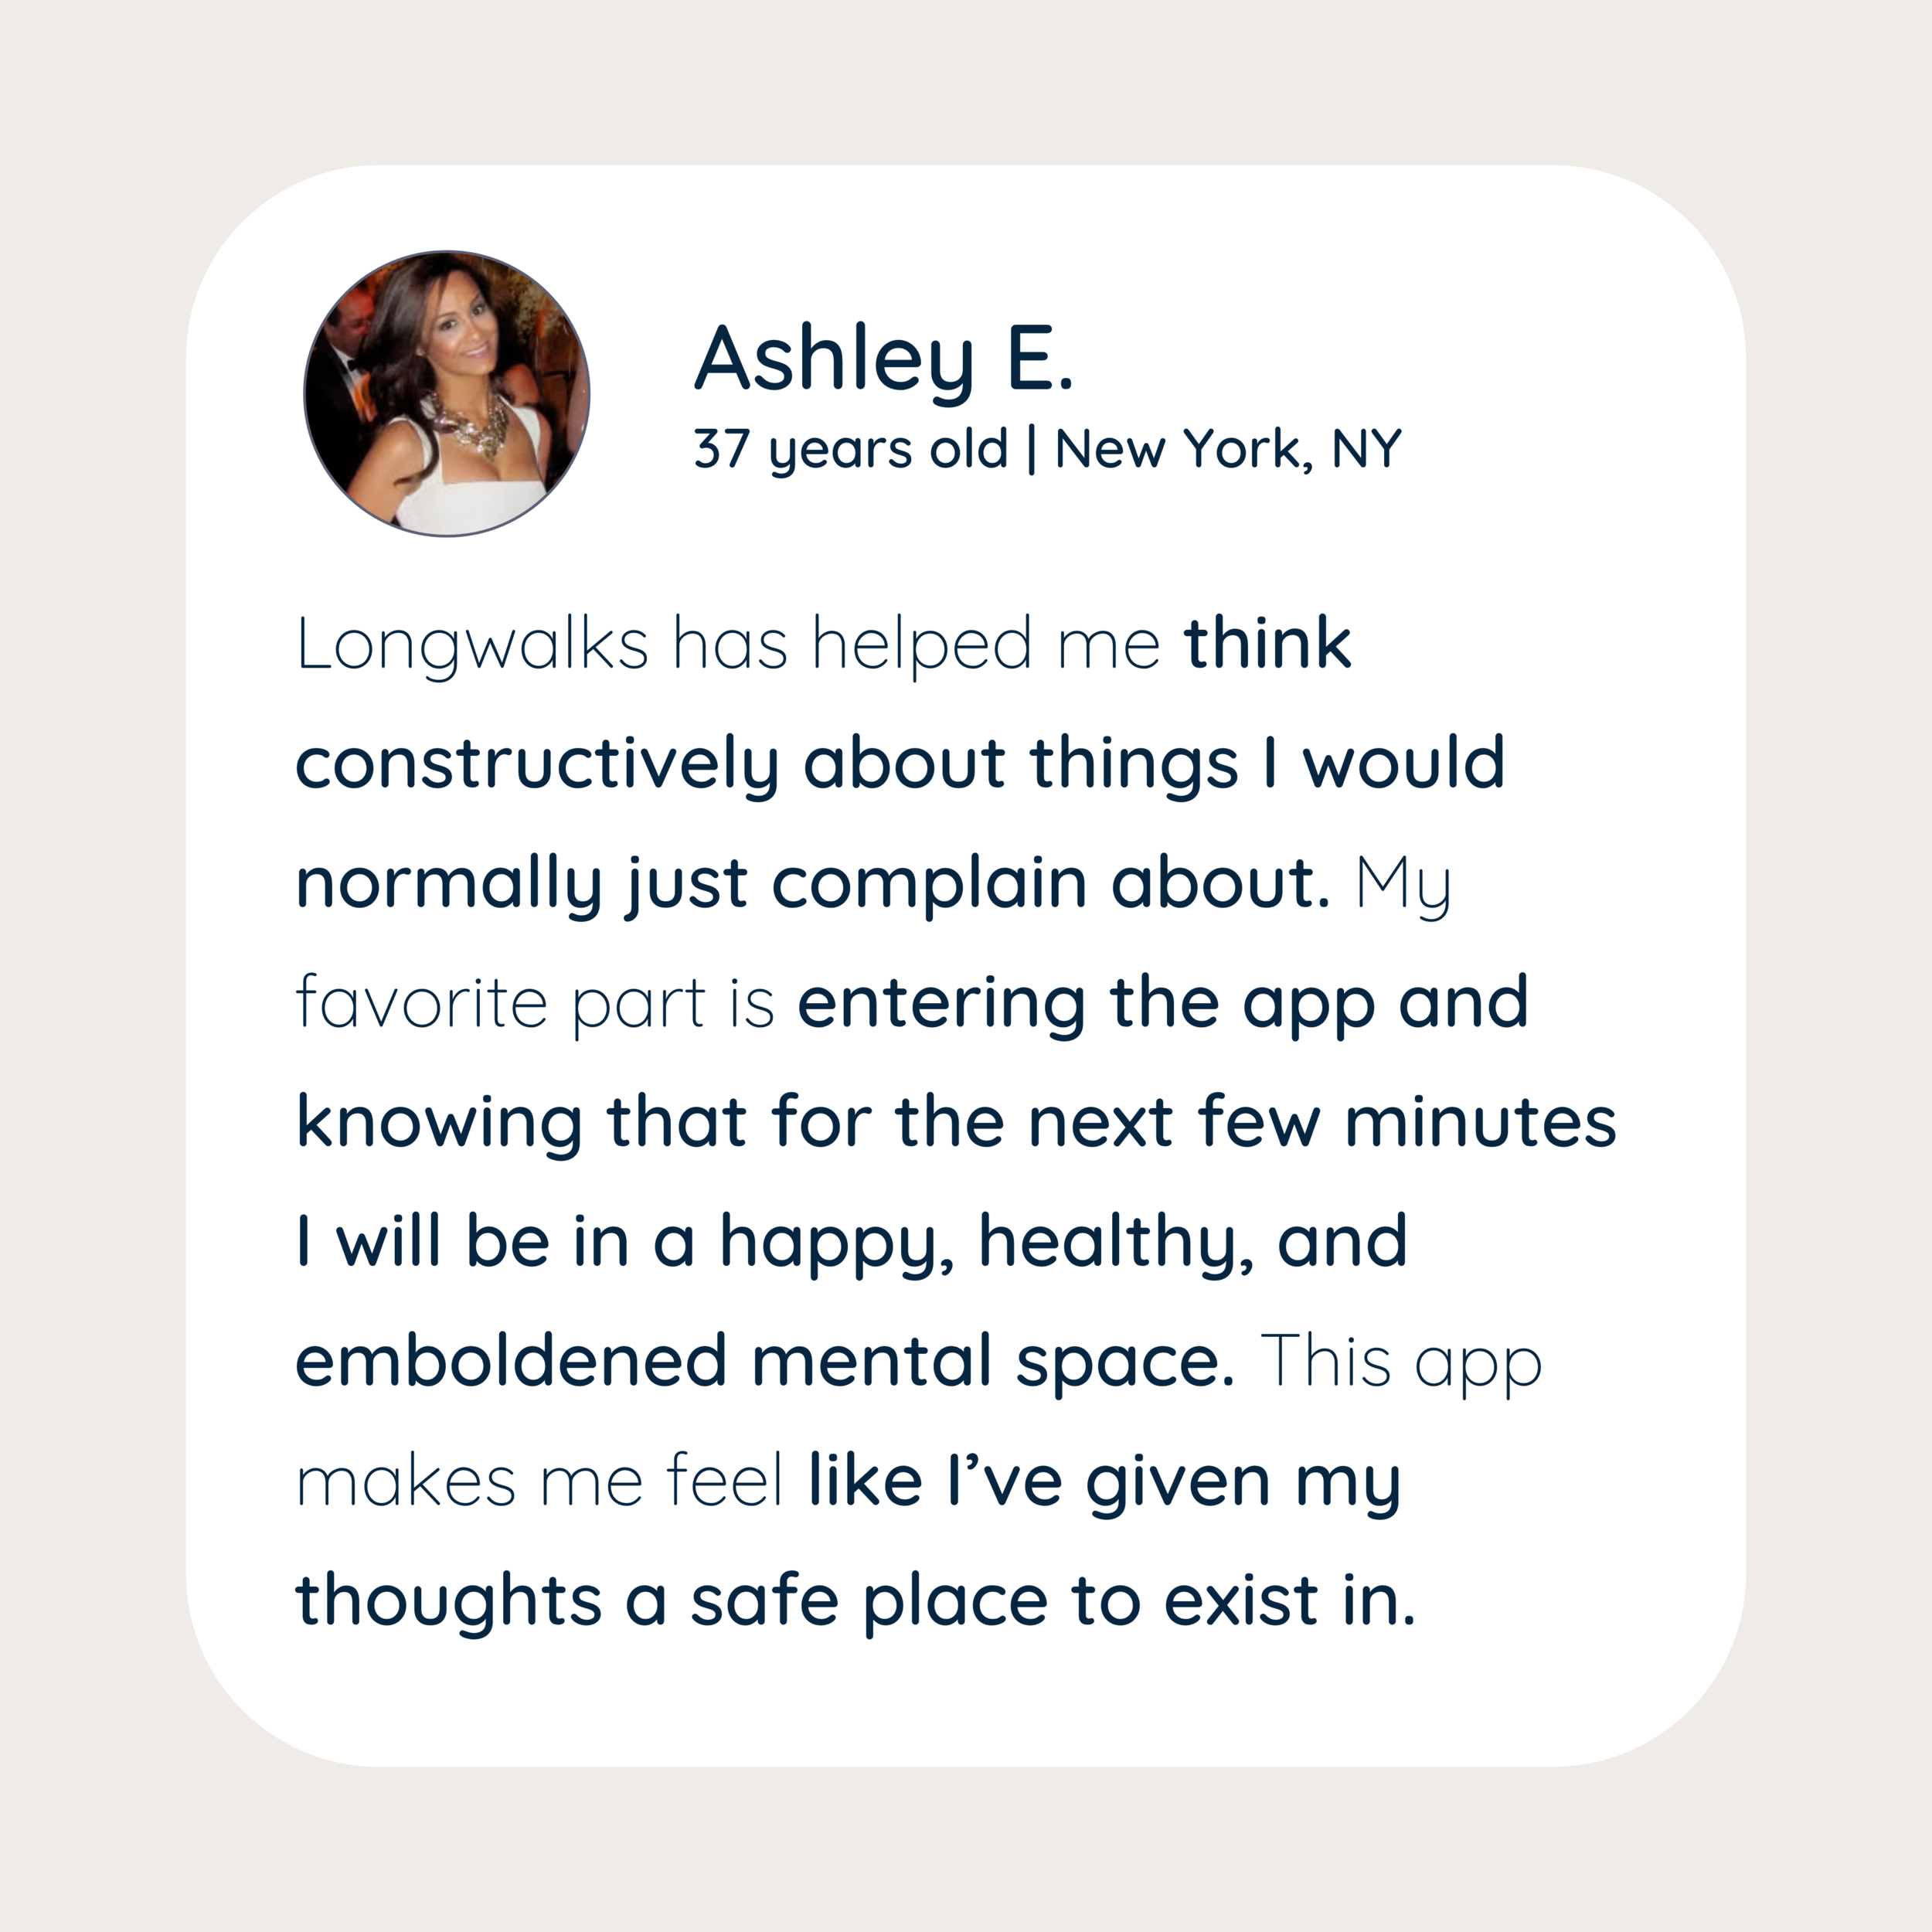 ashley review.png